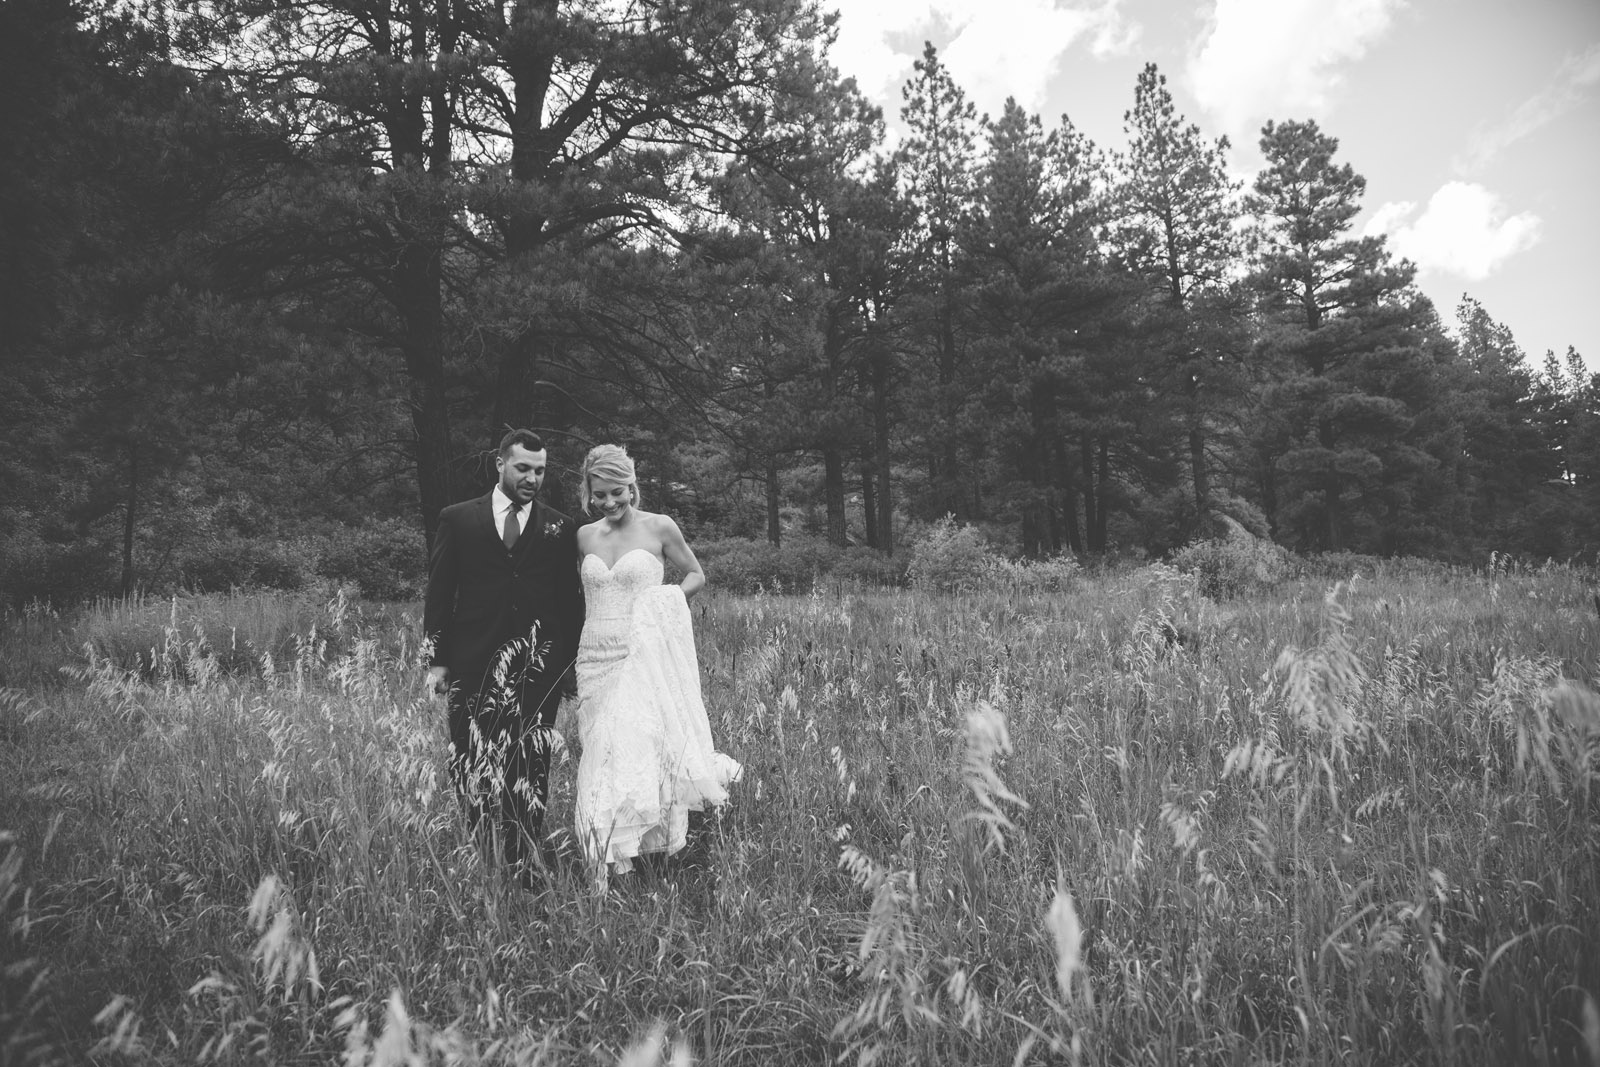 168-beautiful-bride-and-groom-photojournalist-portraits-at-elopement-wedding-in-durango-colorado-forest